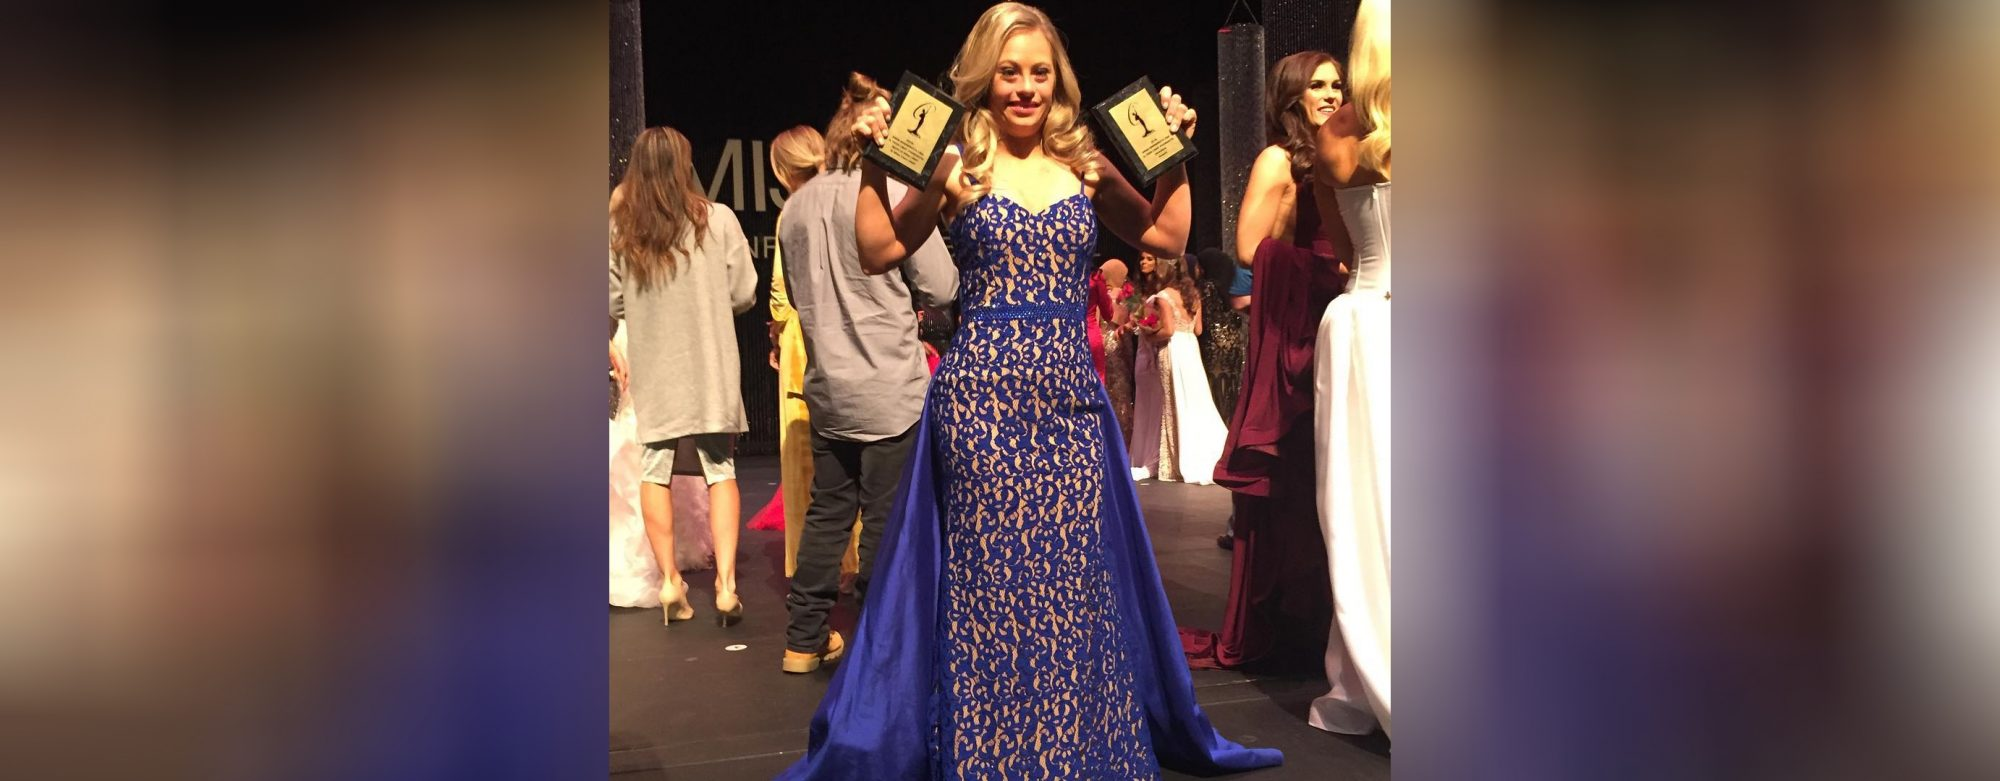 down-syndrome-pageant-winner